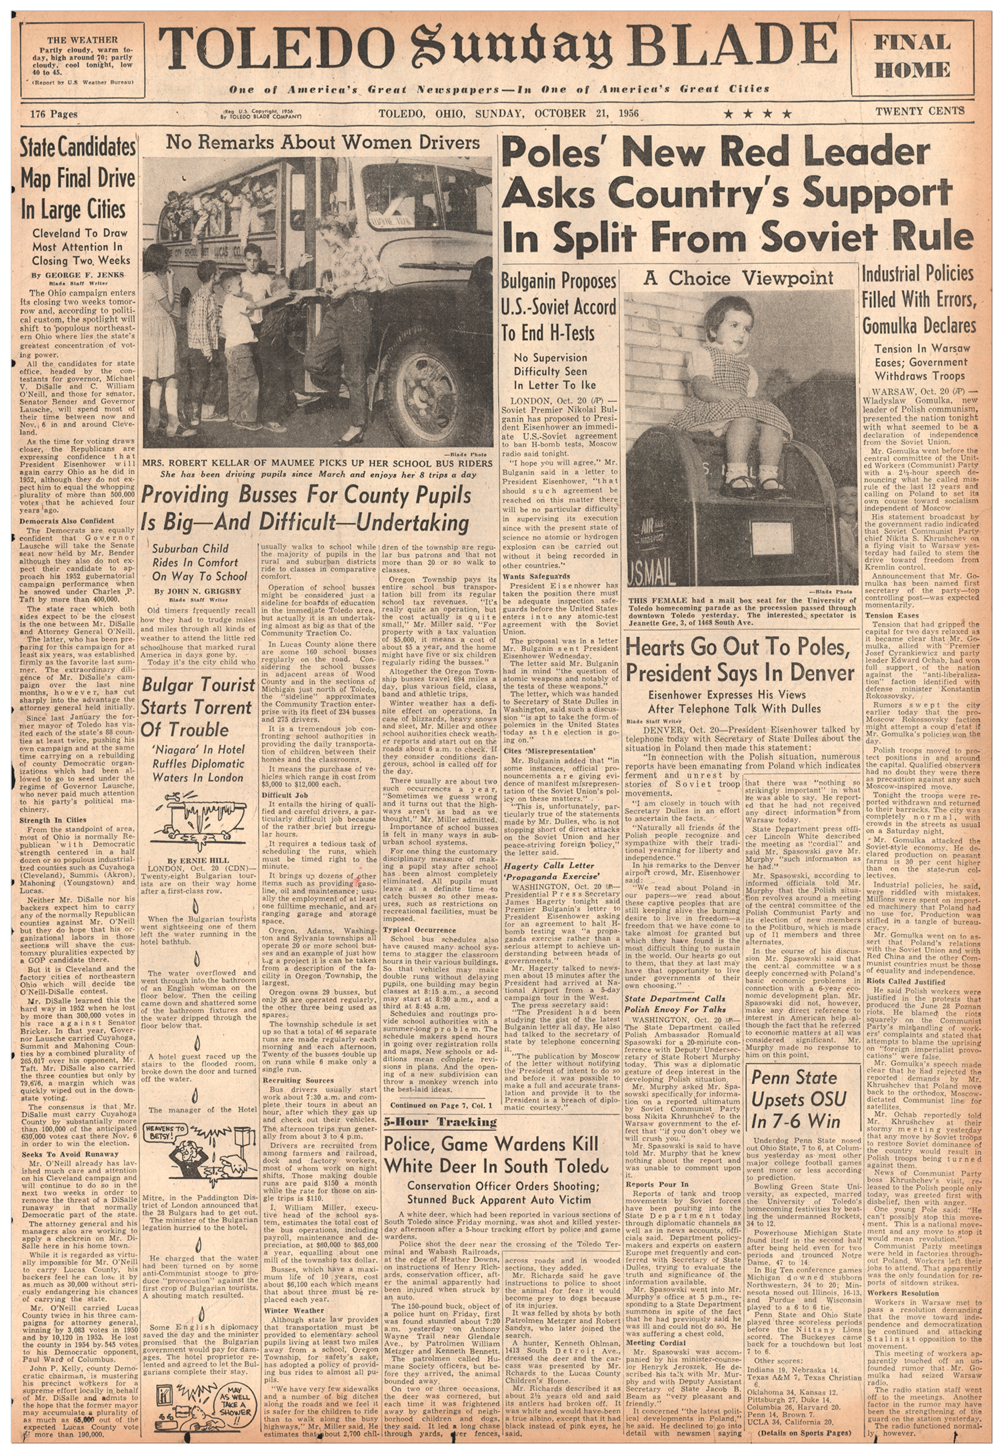 Sample from October 21, 1956 shown